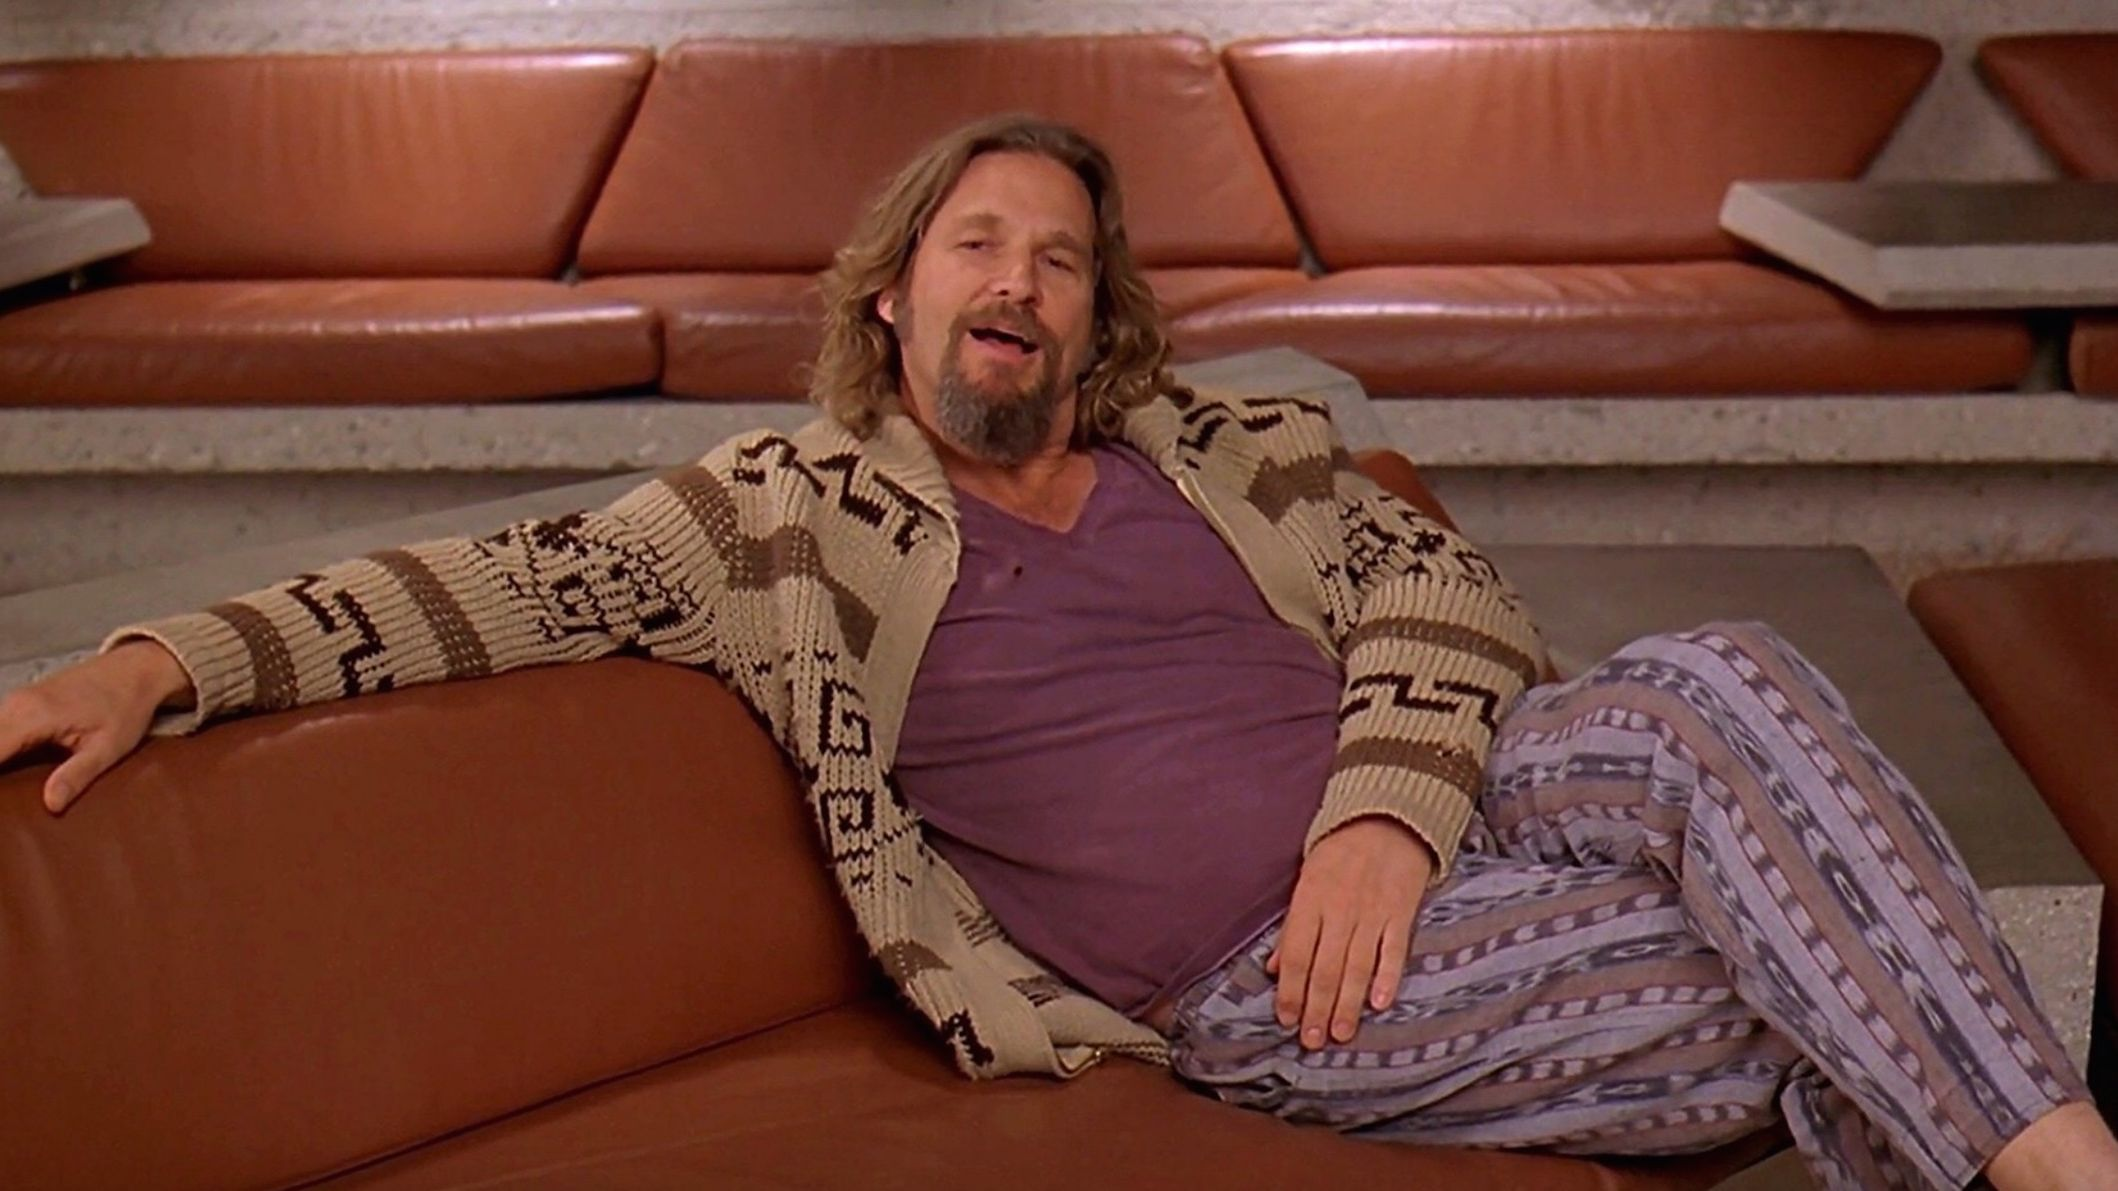 https://www.mentalfloss.com/article/61708/21-things-you-might-not-know-about-big-lebowski